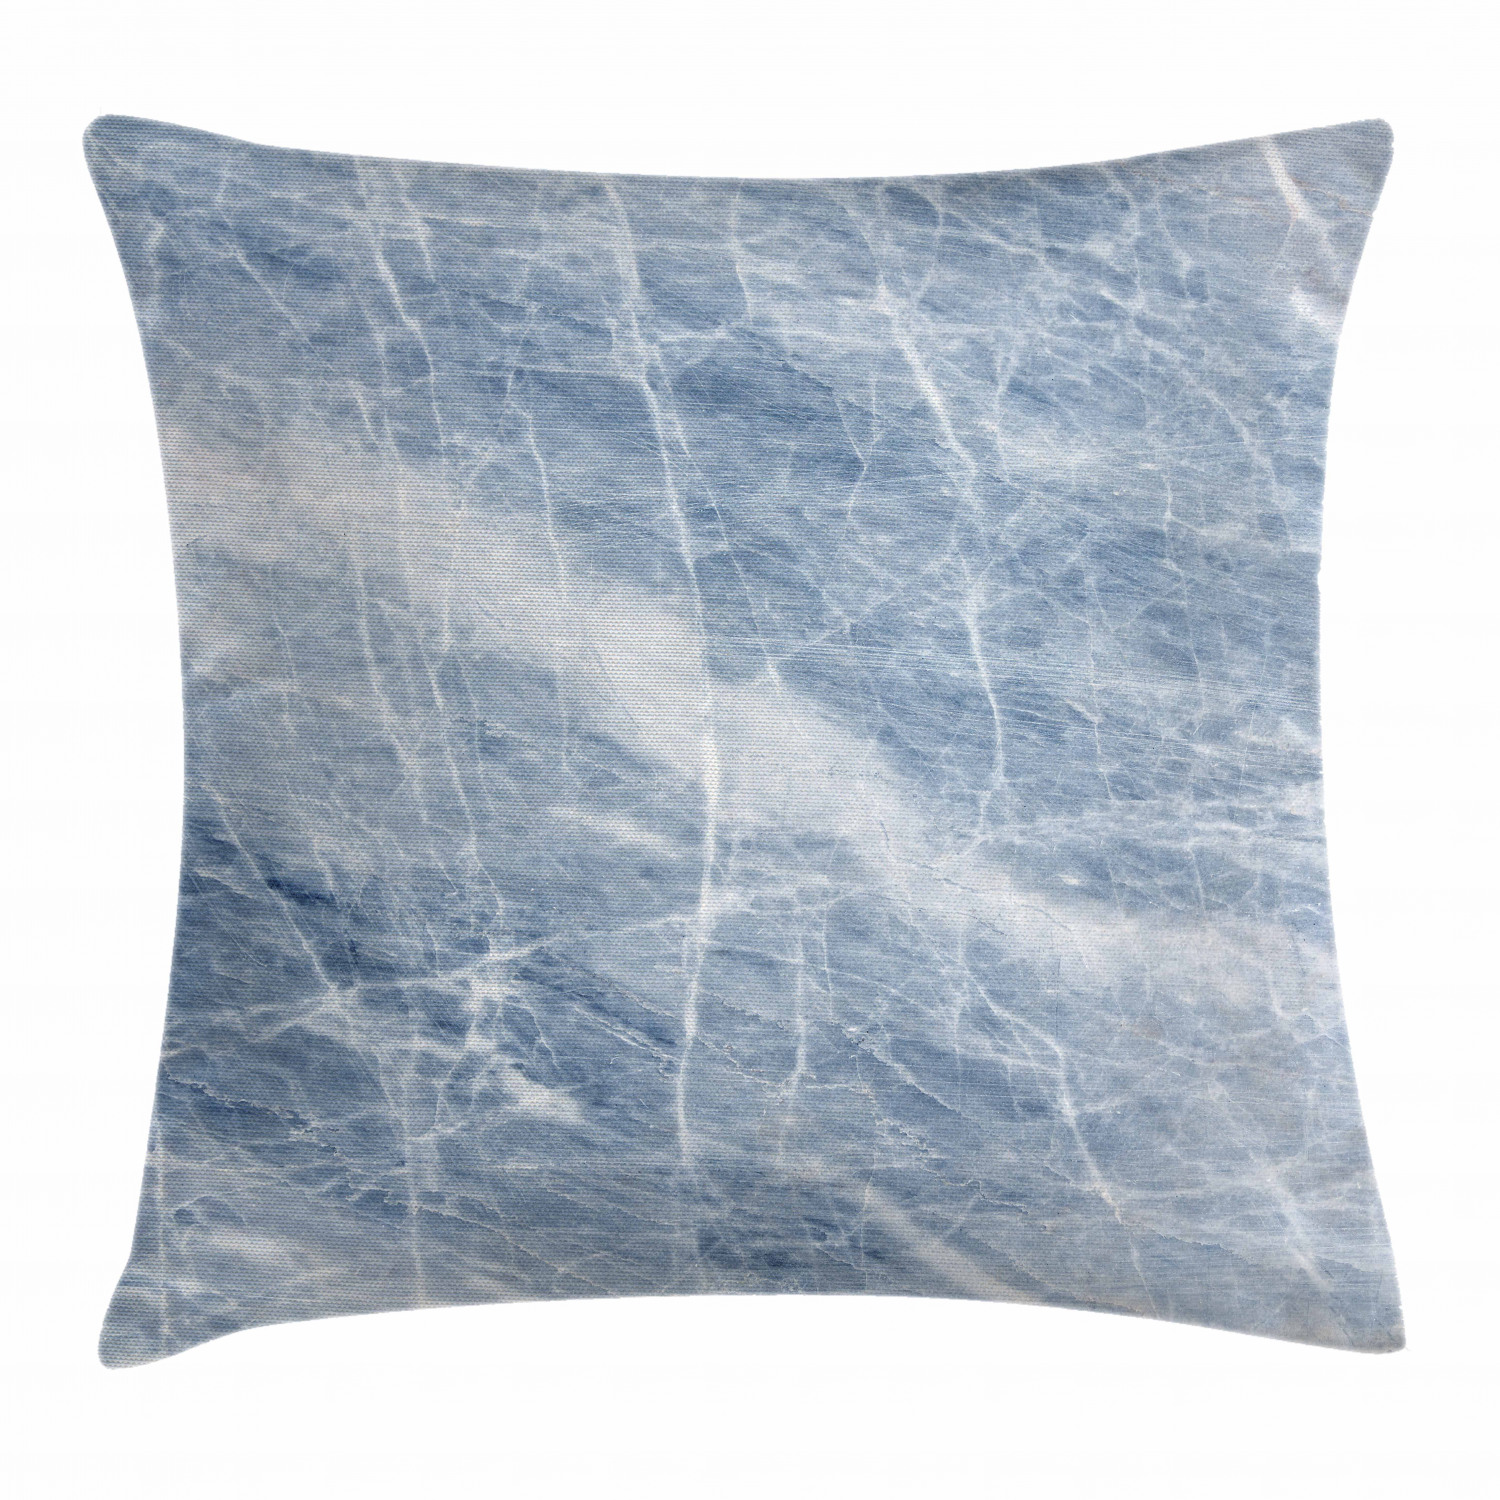 marble throw pillow cushion cover pale blue marble pattern with white cracks on its surface geography stone decorative square accent pillow case 24